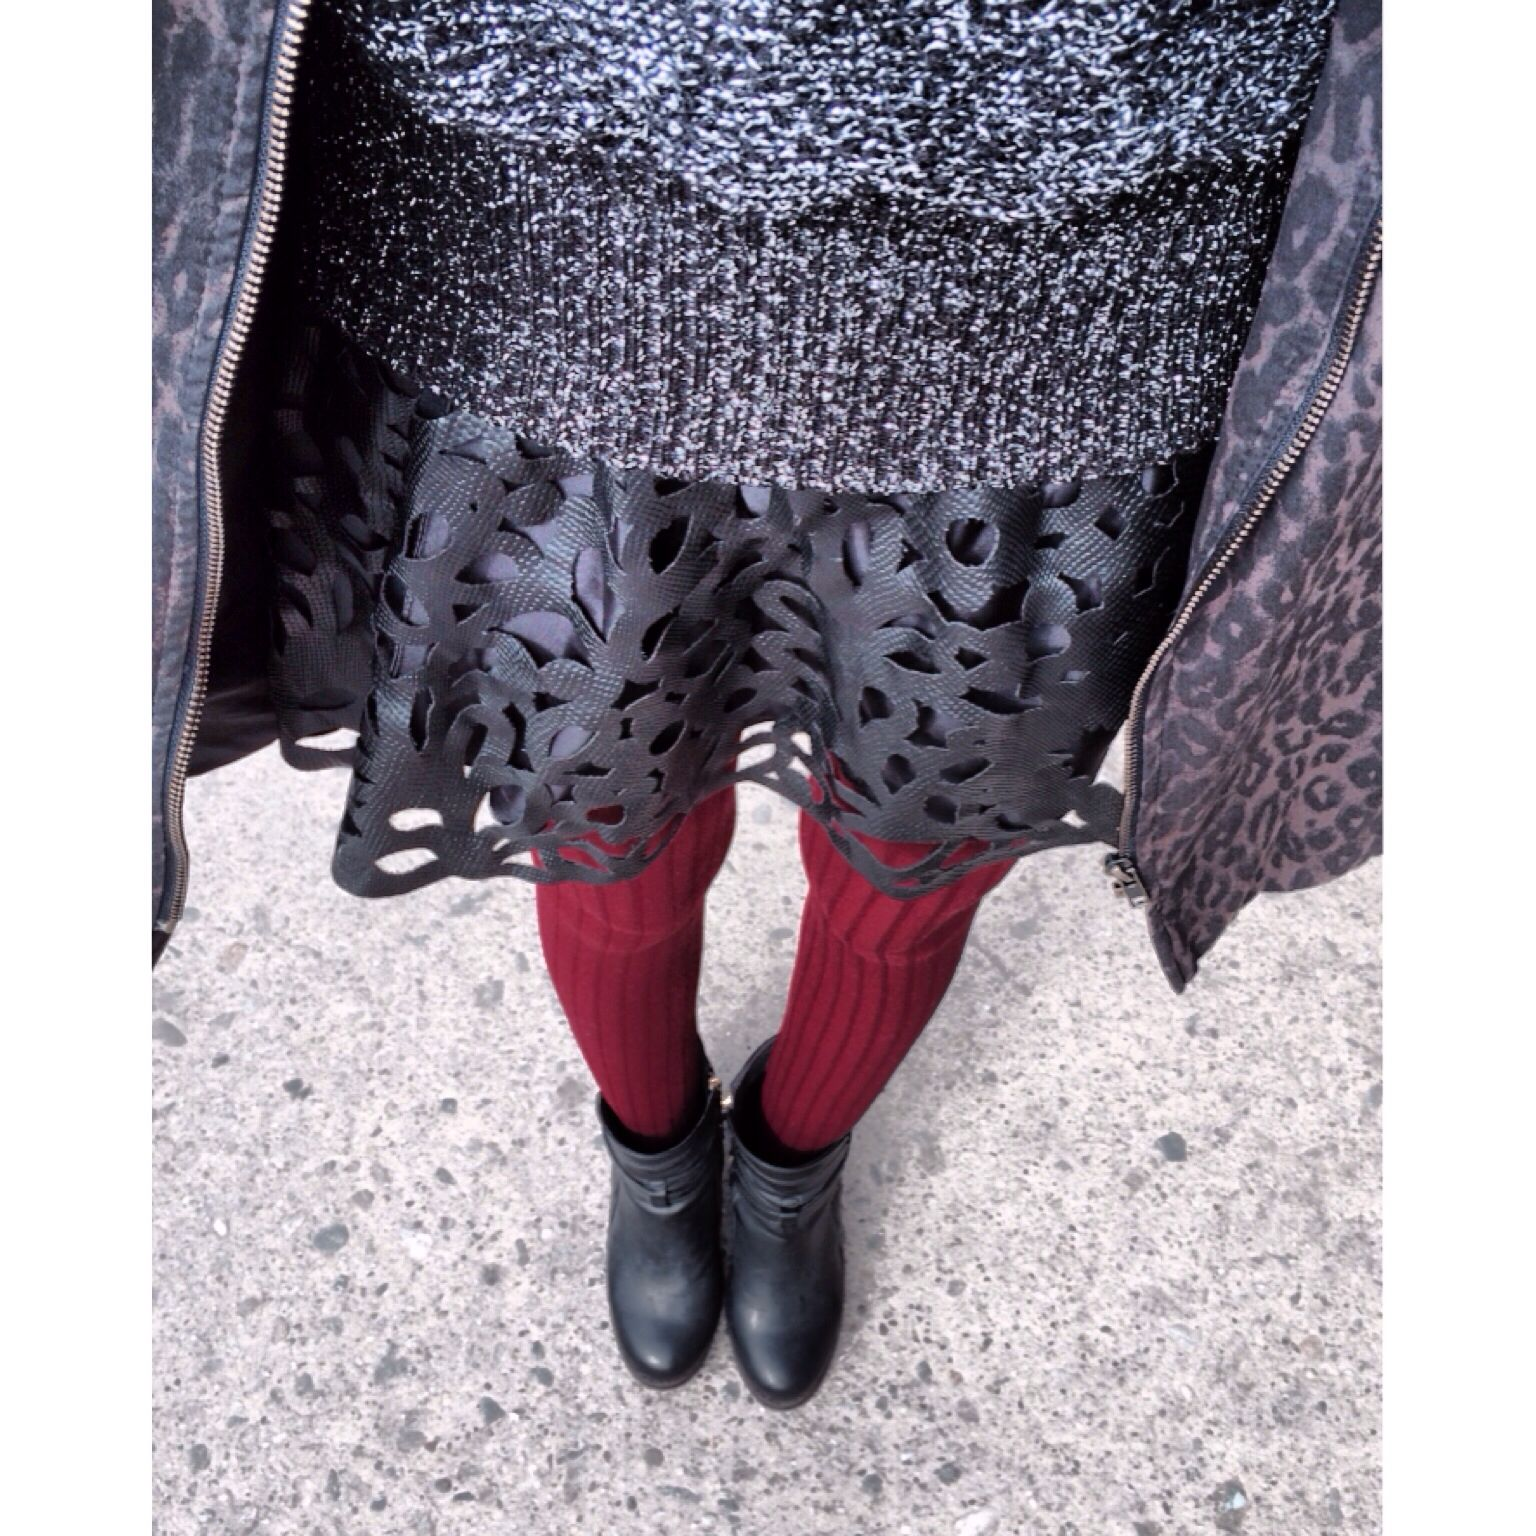 Mixing textures and prints this cold LA day #silverwears #mixingprints #mixingtextures #sowearto #hm #topshop #fashion #fashionblogger #fblogger #falltrends #fallfashion